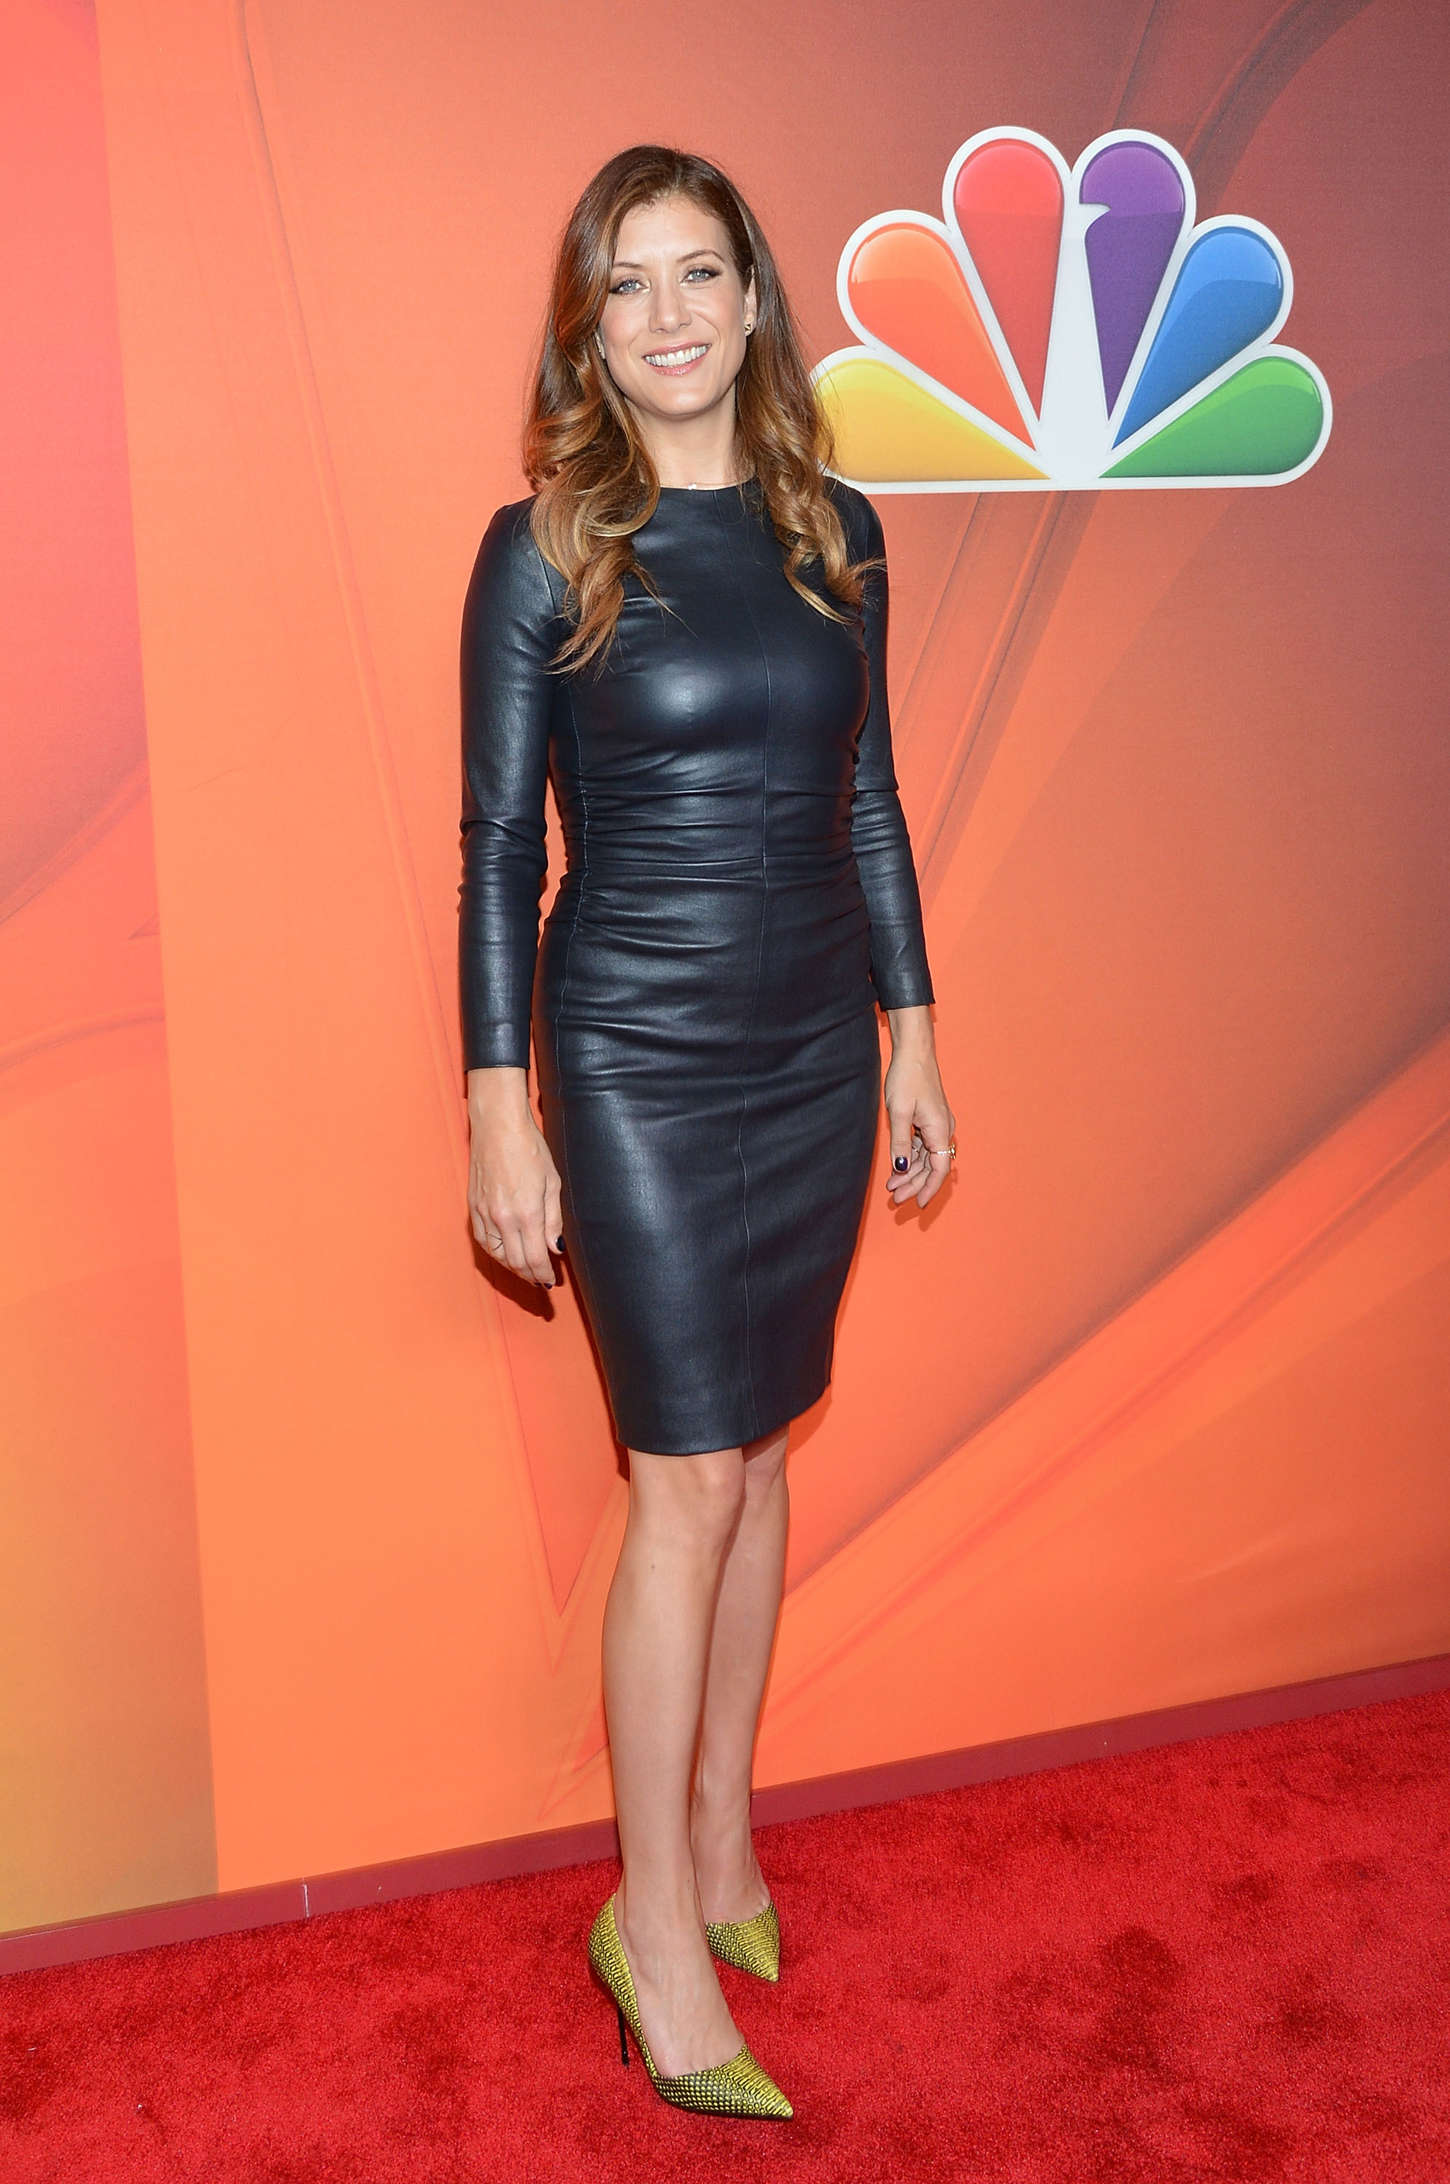 Kate Walsh In Leather Dress 06 Gotceleb